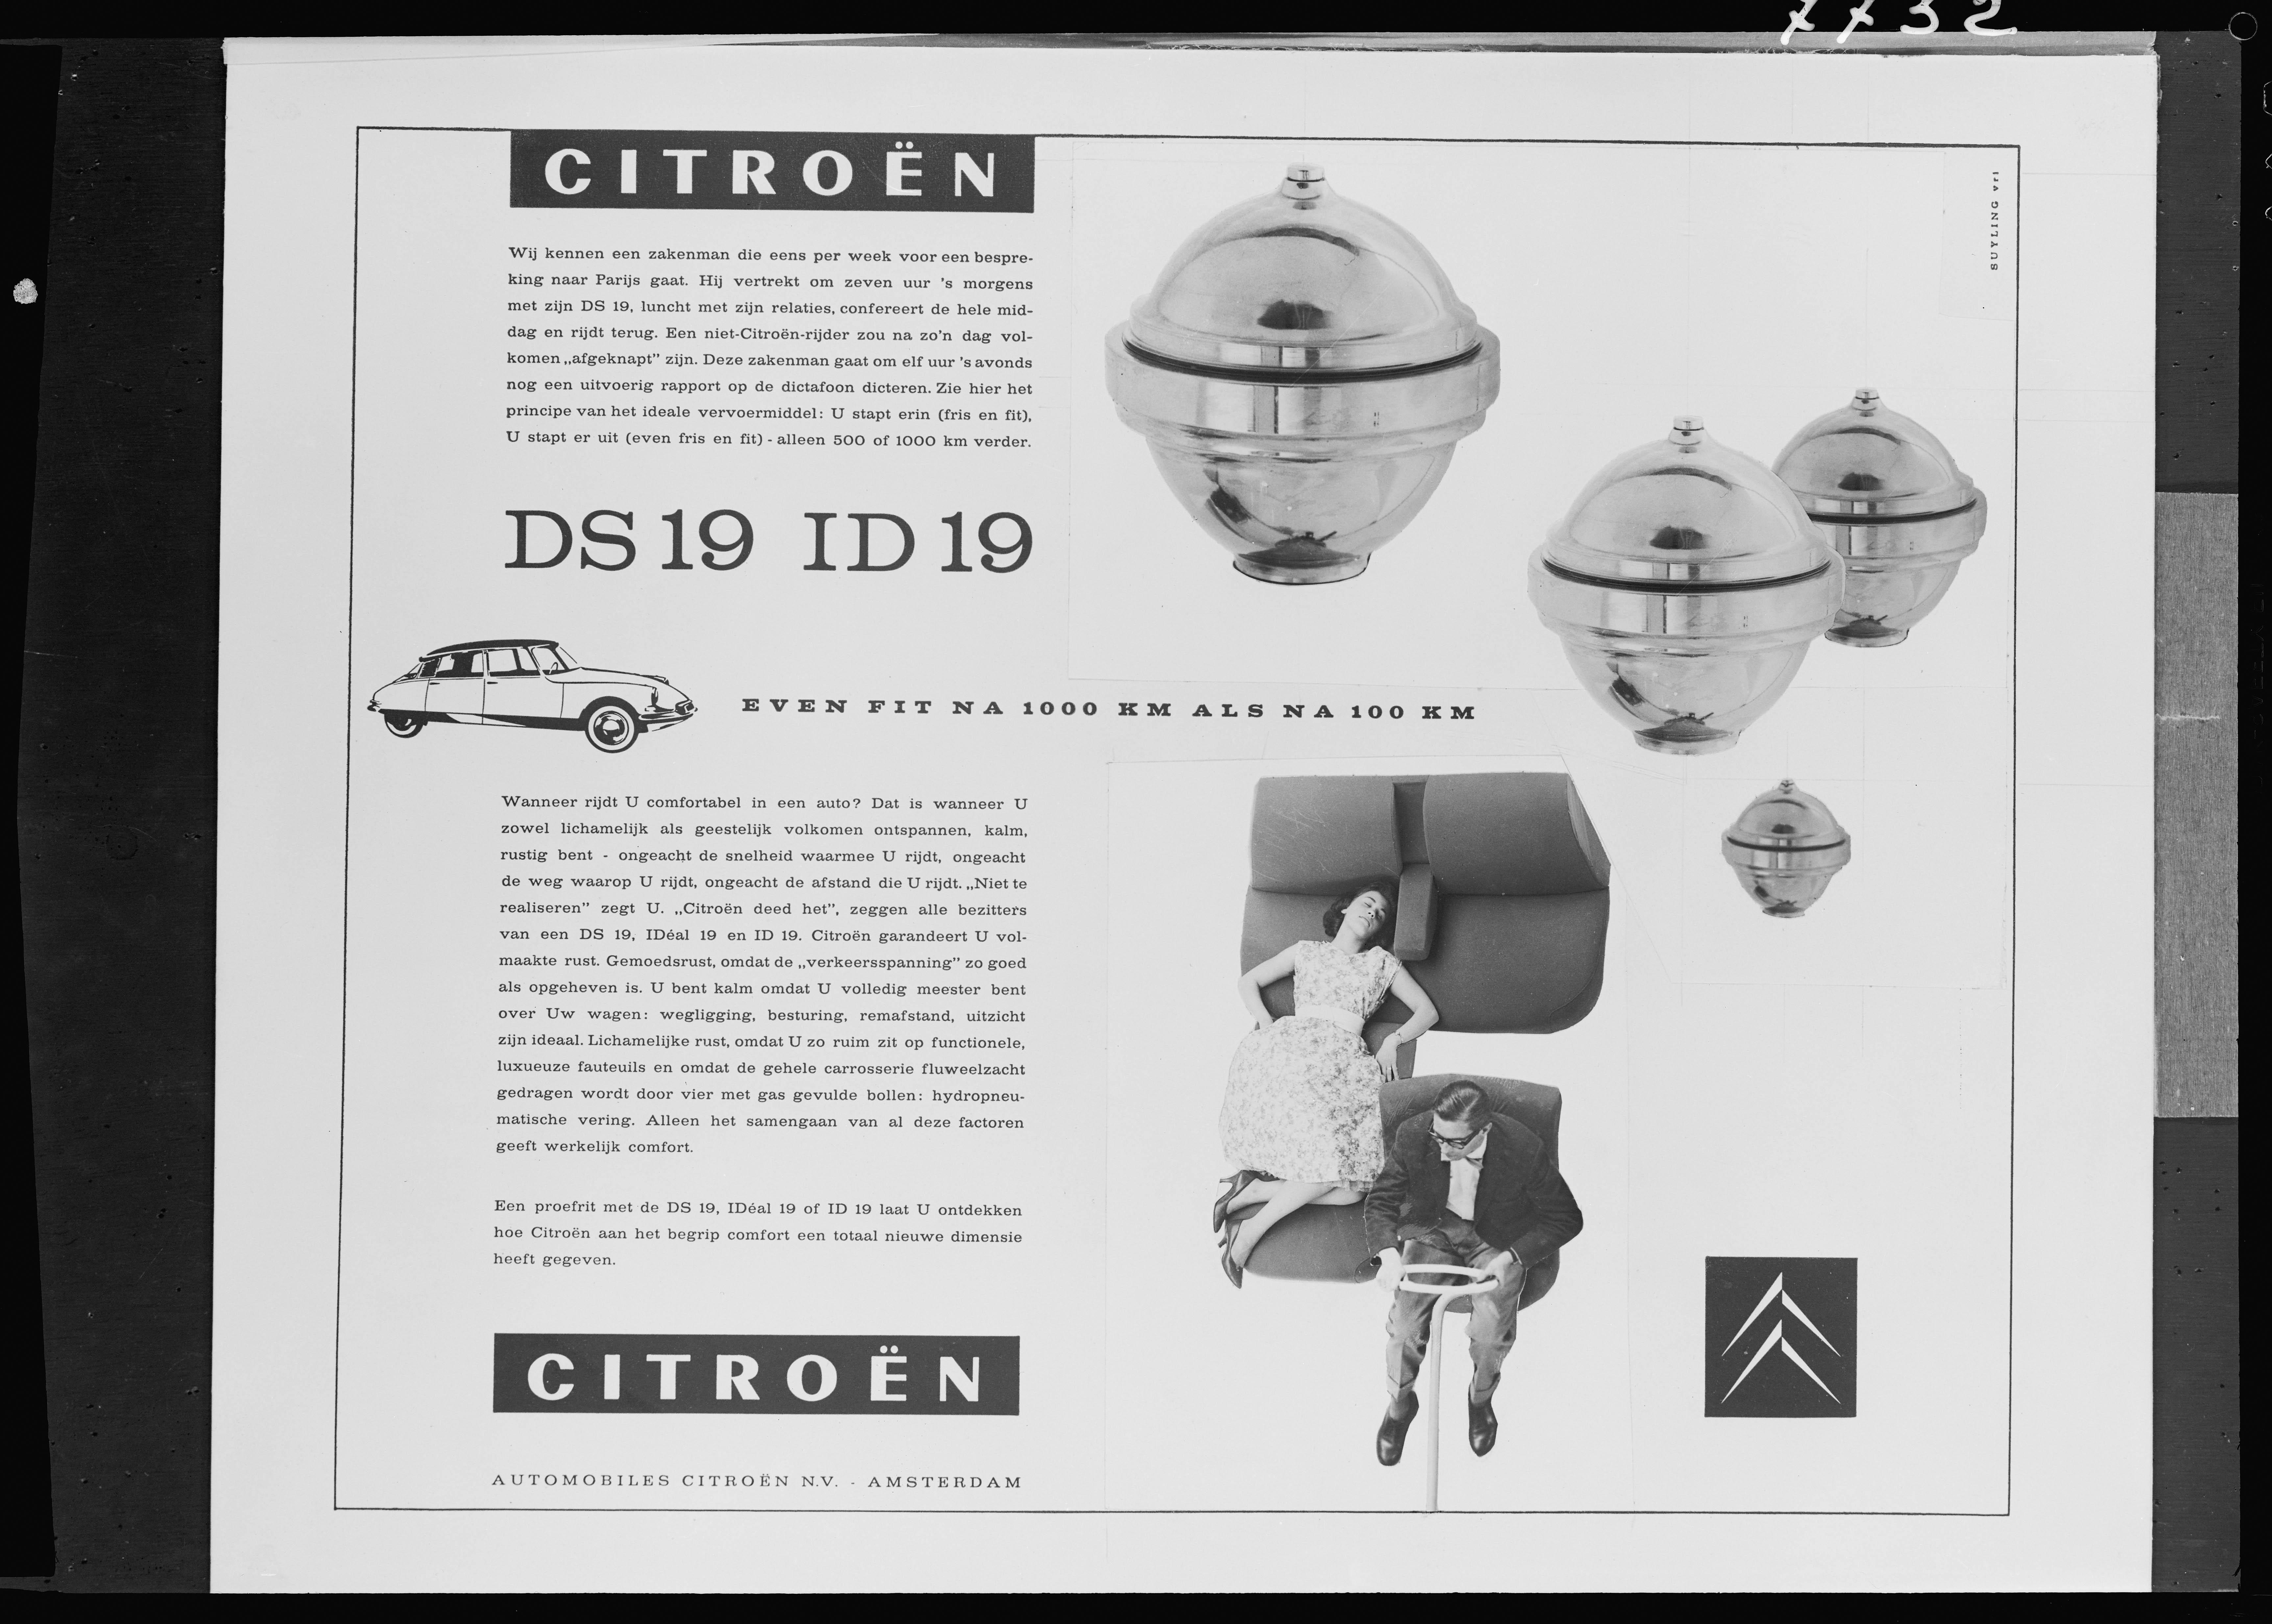 DS 19 Advertising in the Netherlands - 1959